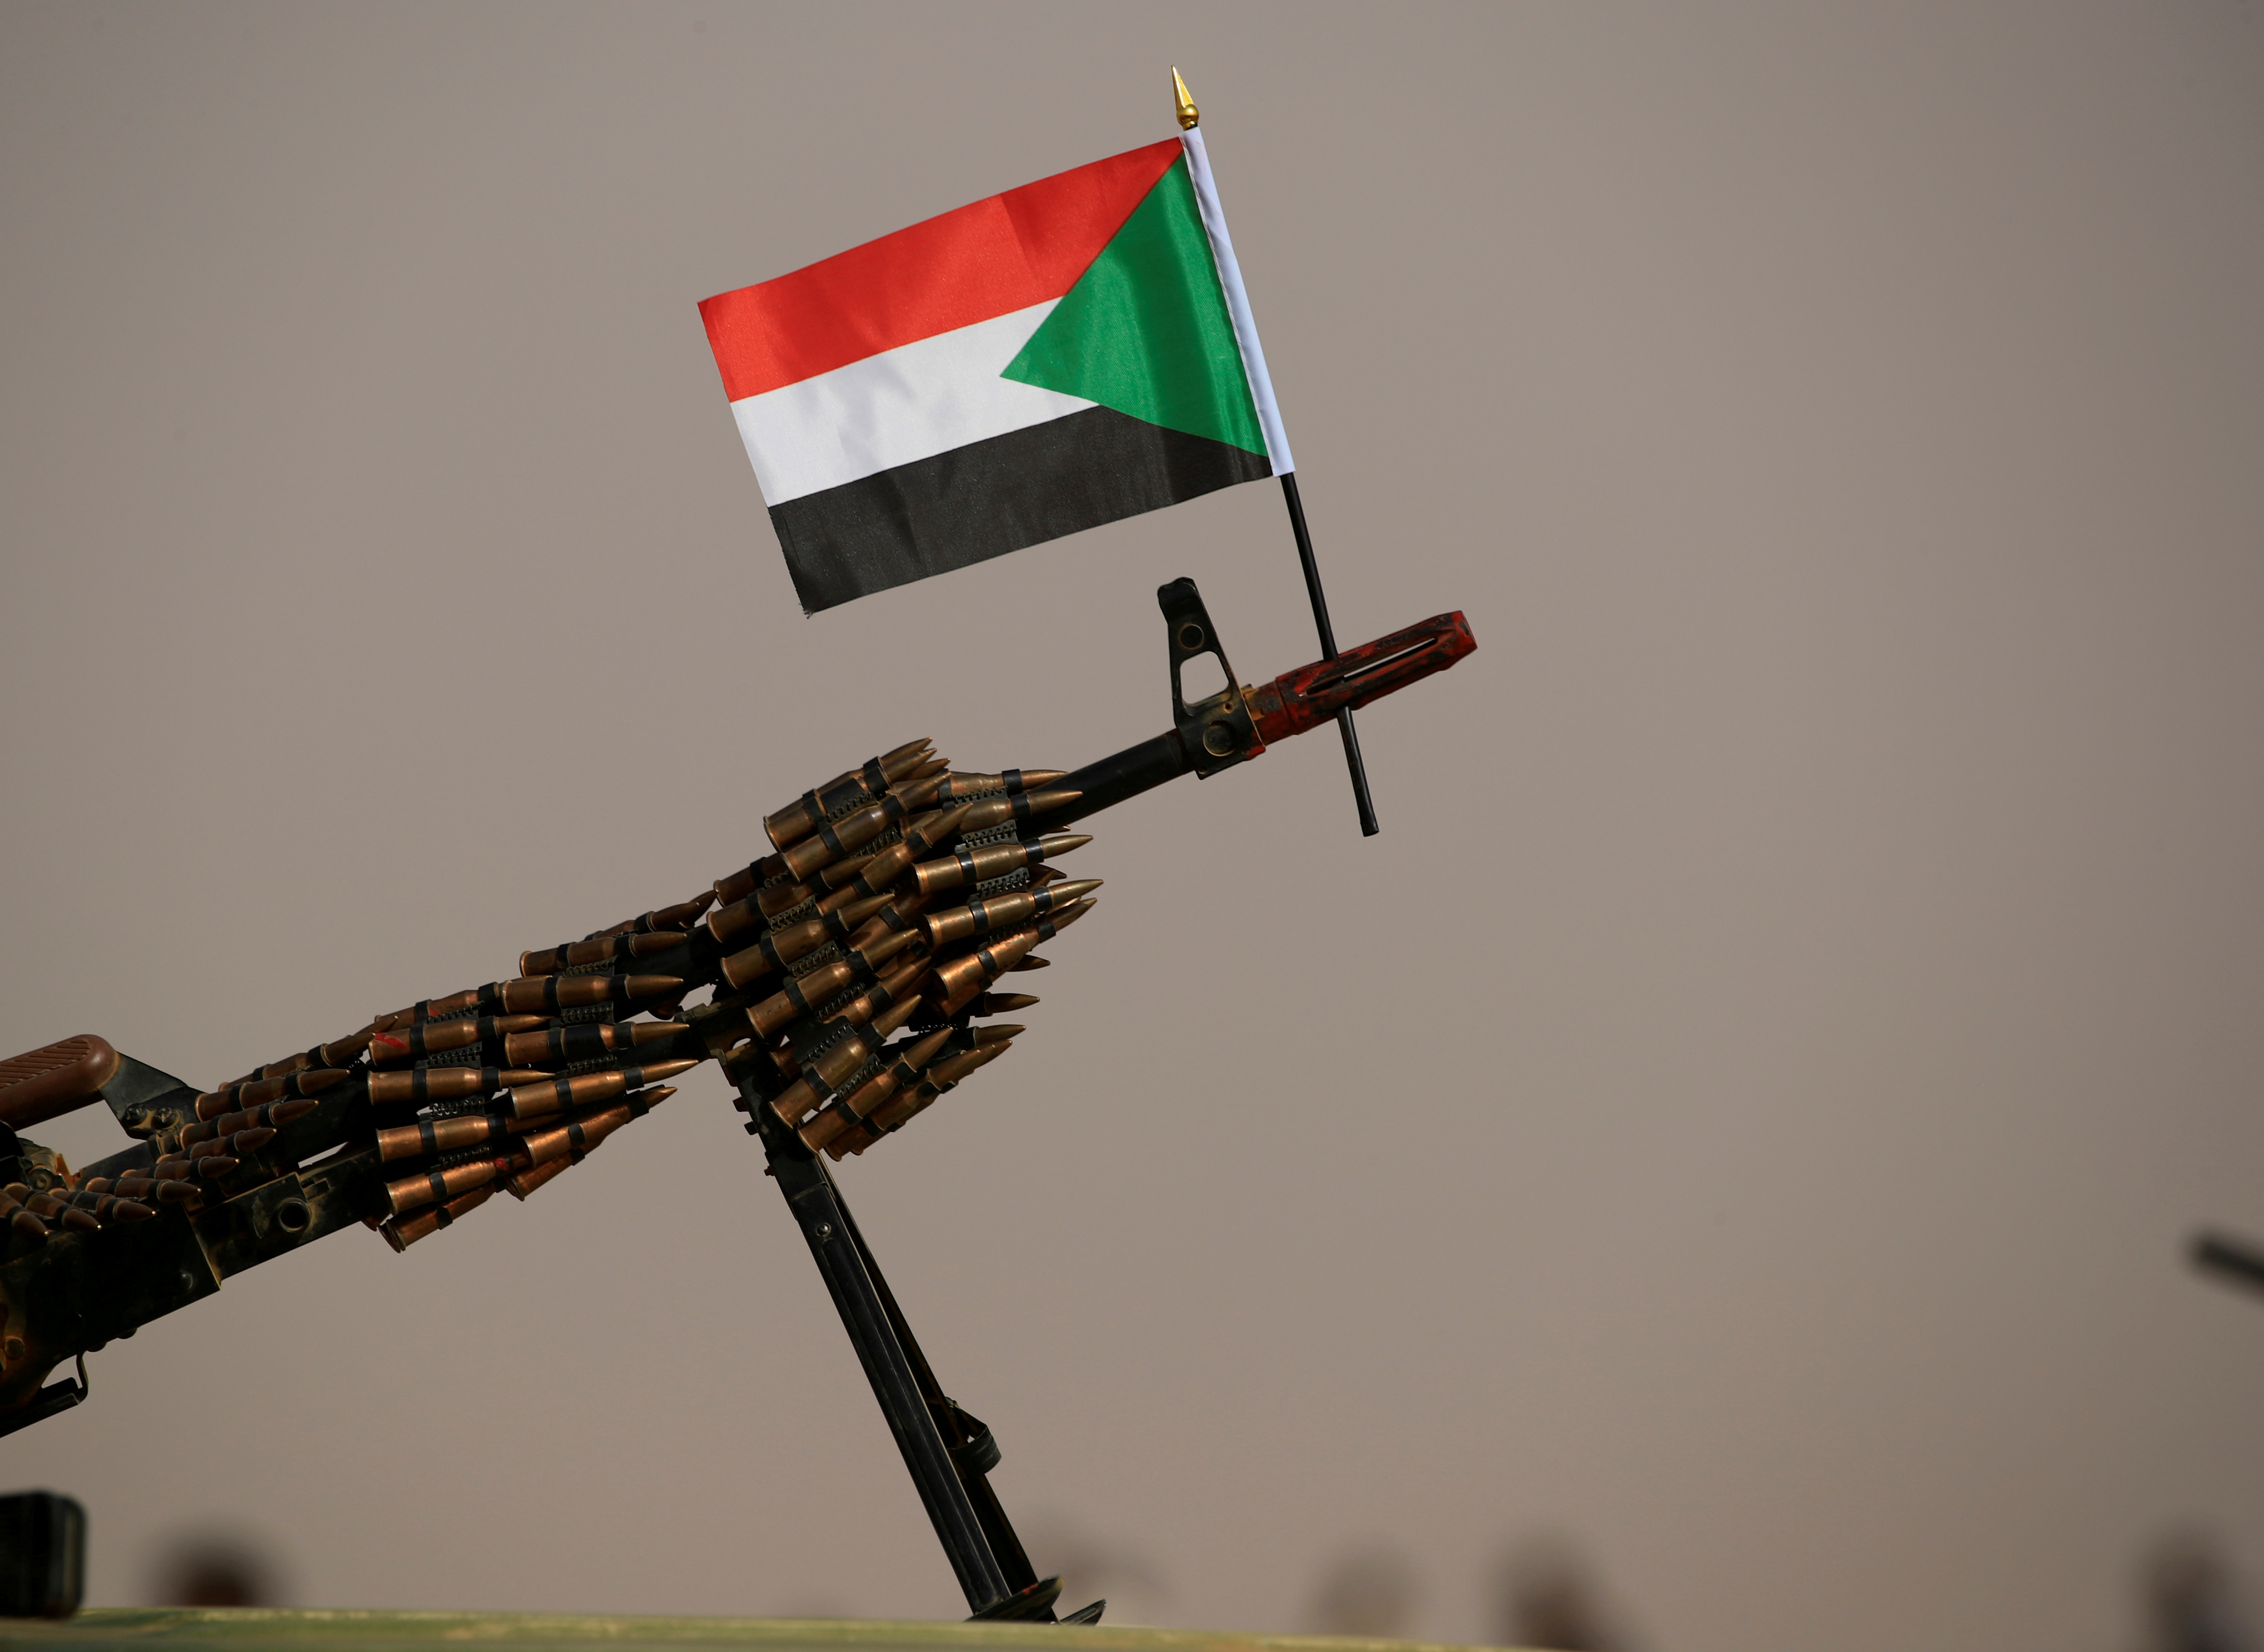 U.S. to consider sanctions in case of more Sudan violence